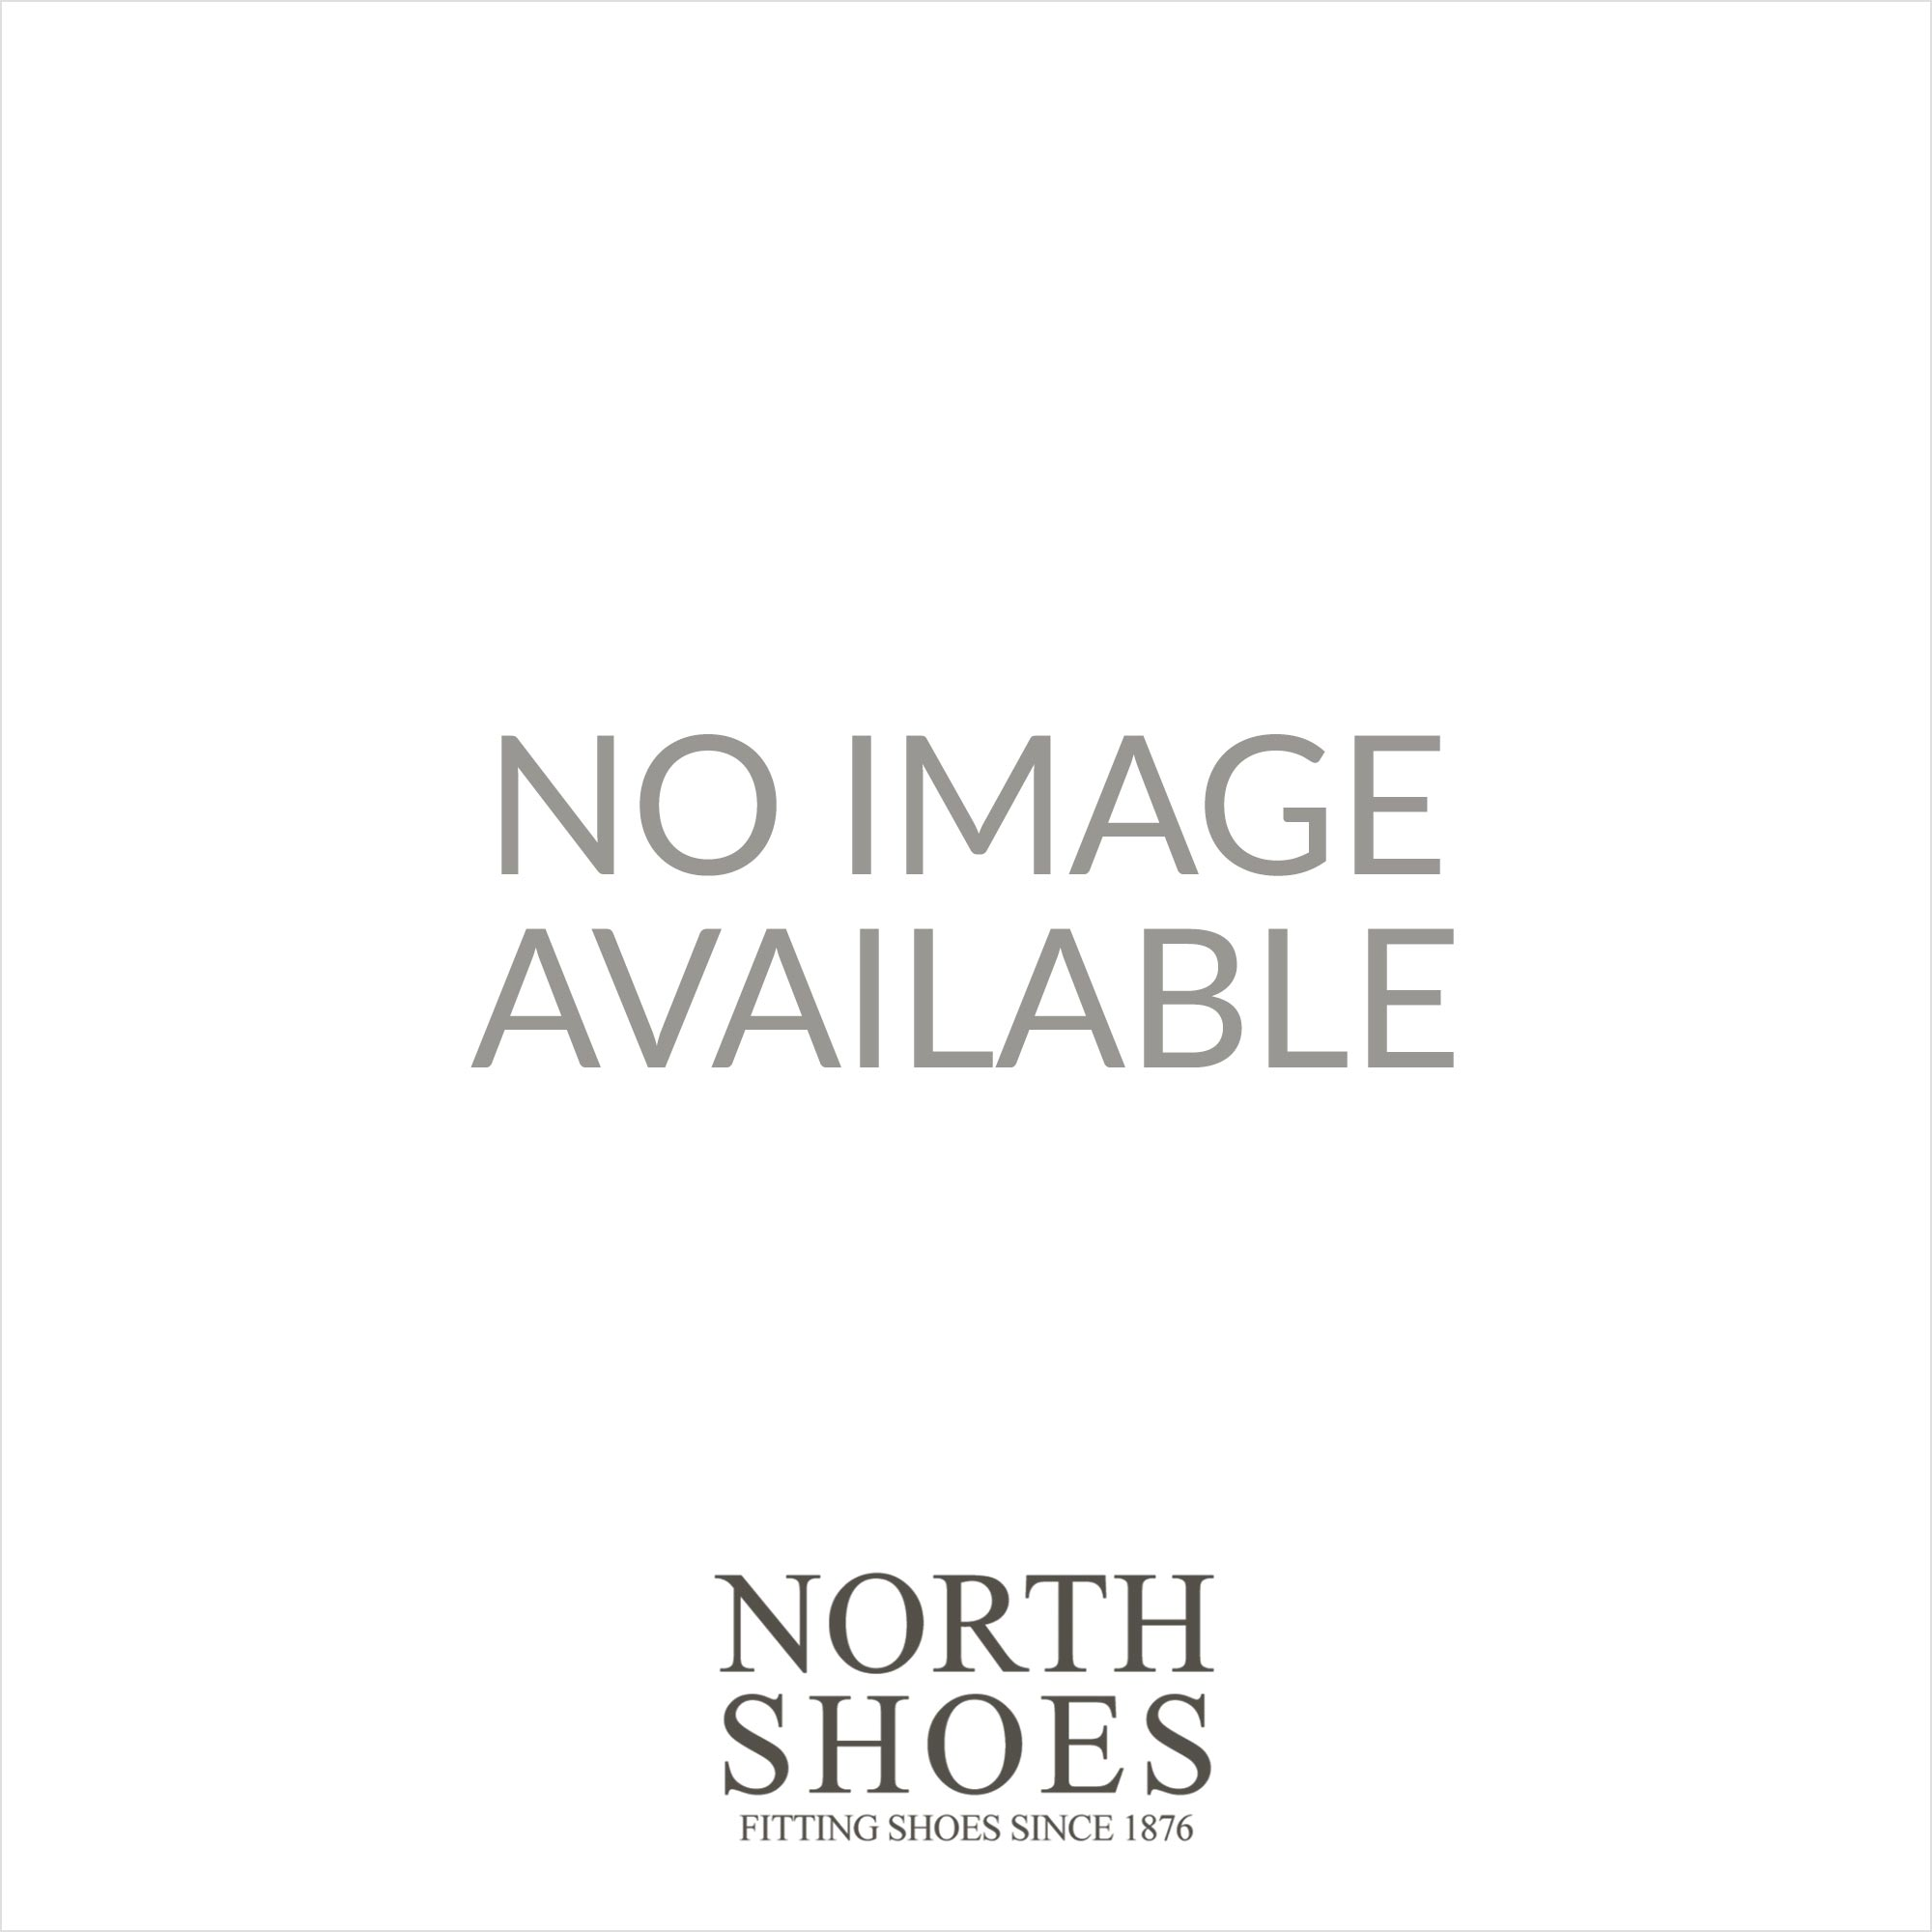 655-8899C1 Tan Leather Womens Closed Toe Sandal